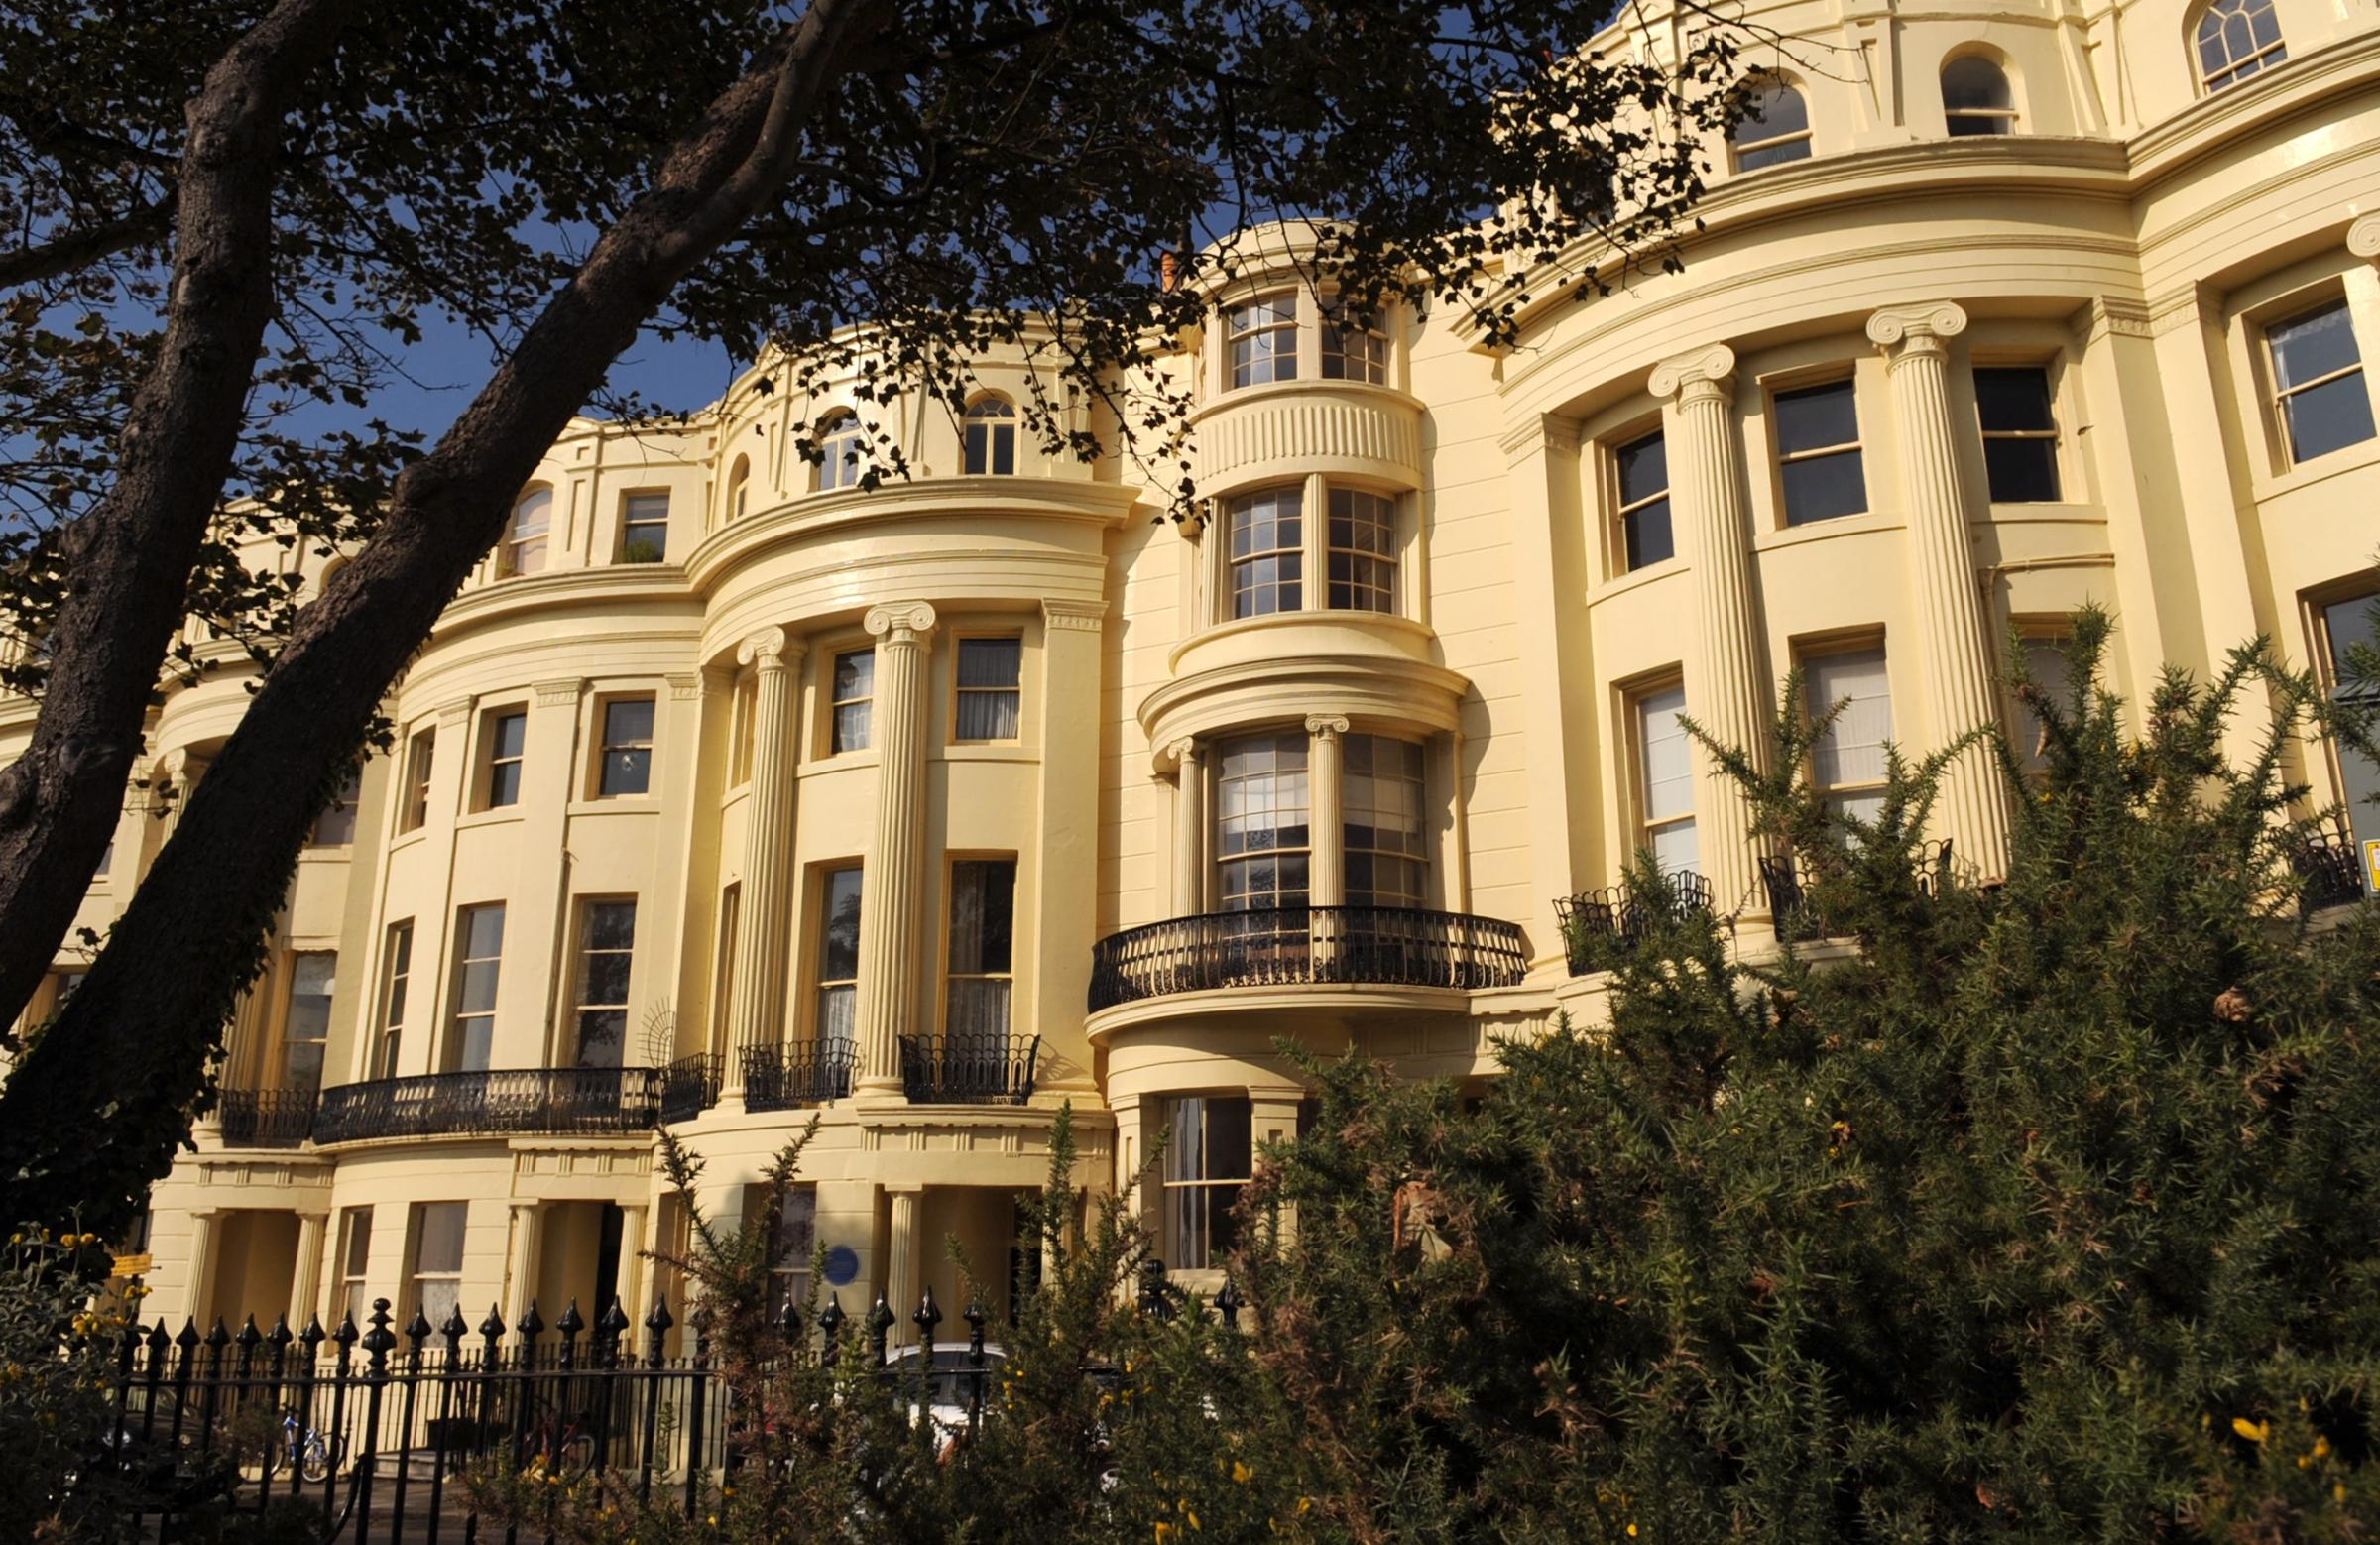 The place yuppies want to live? It's Hove, actually.